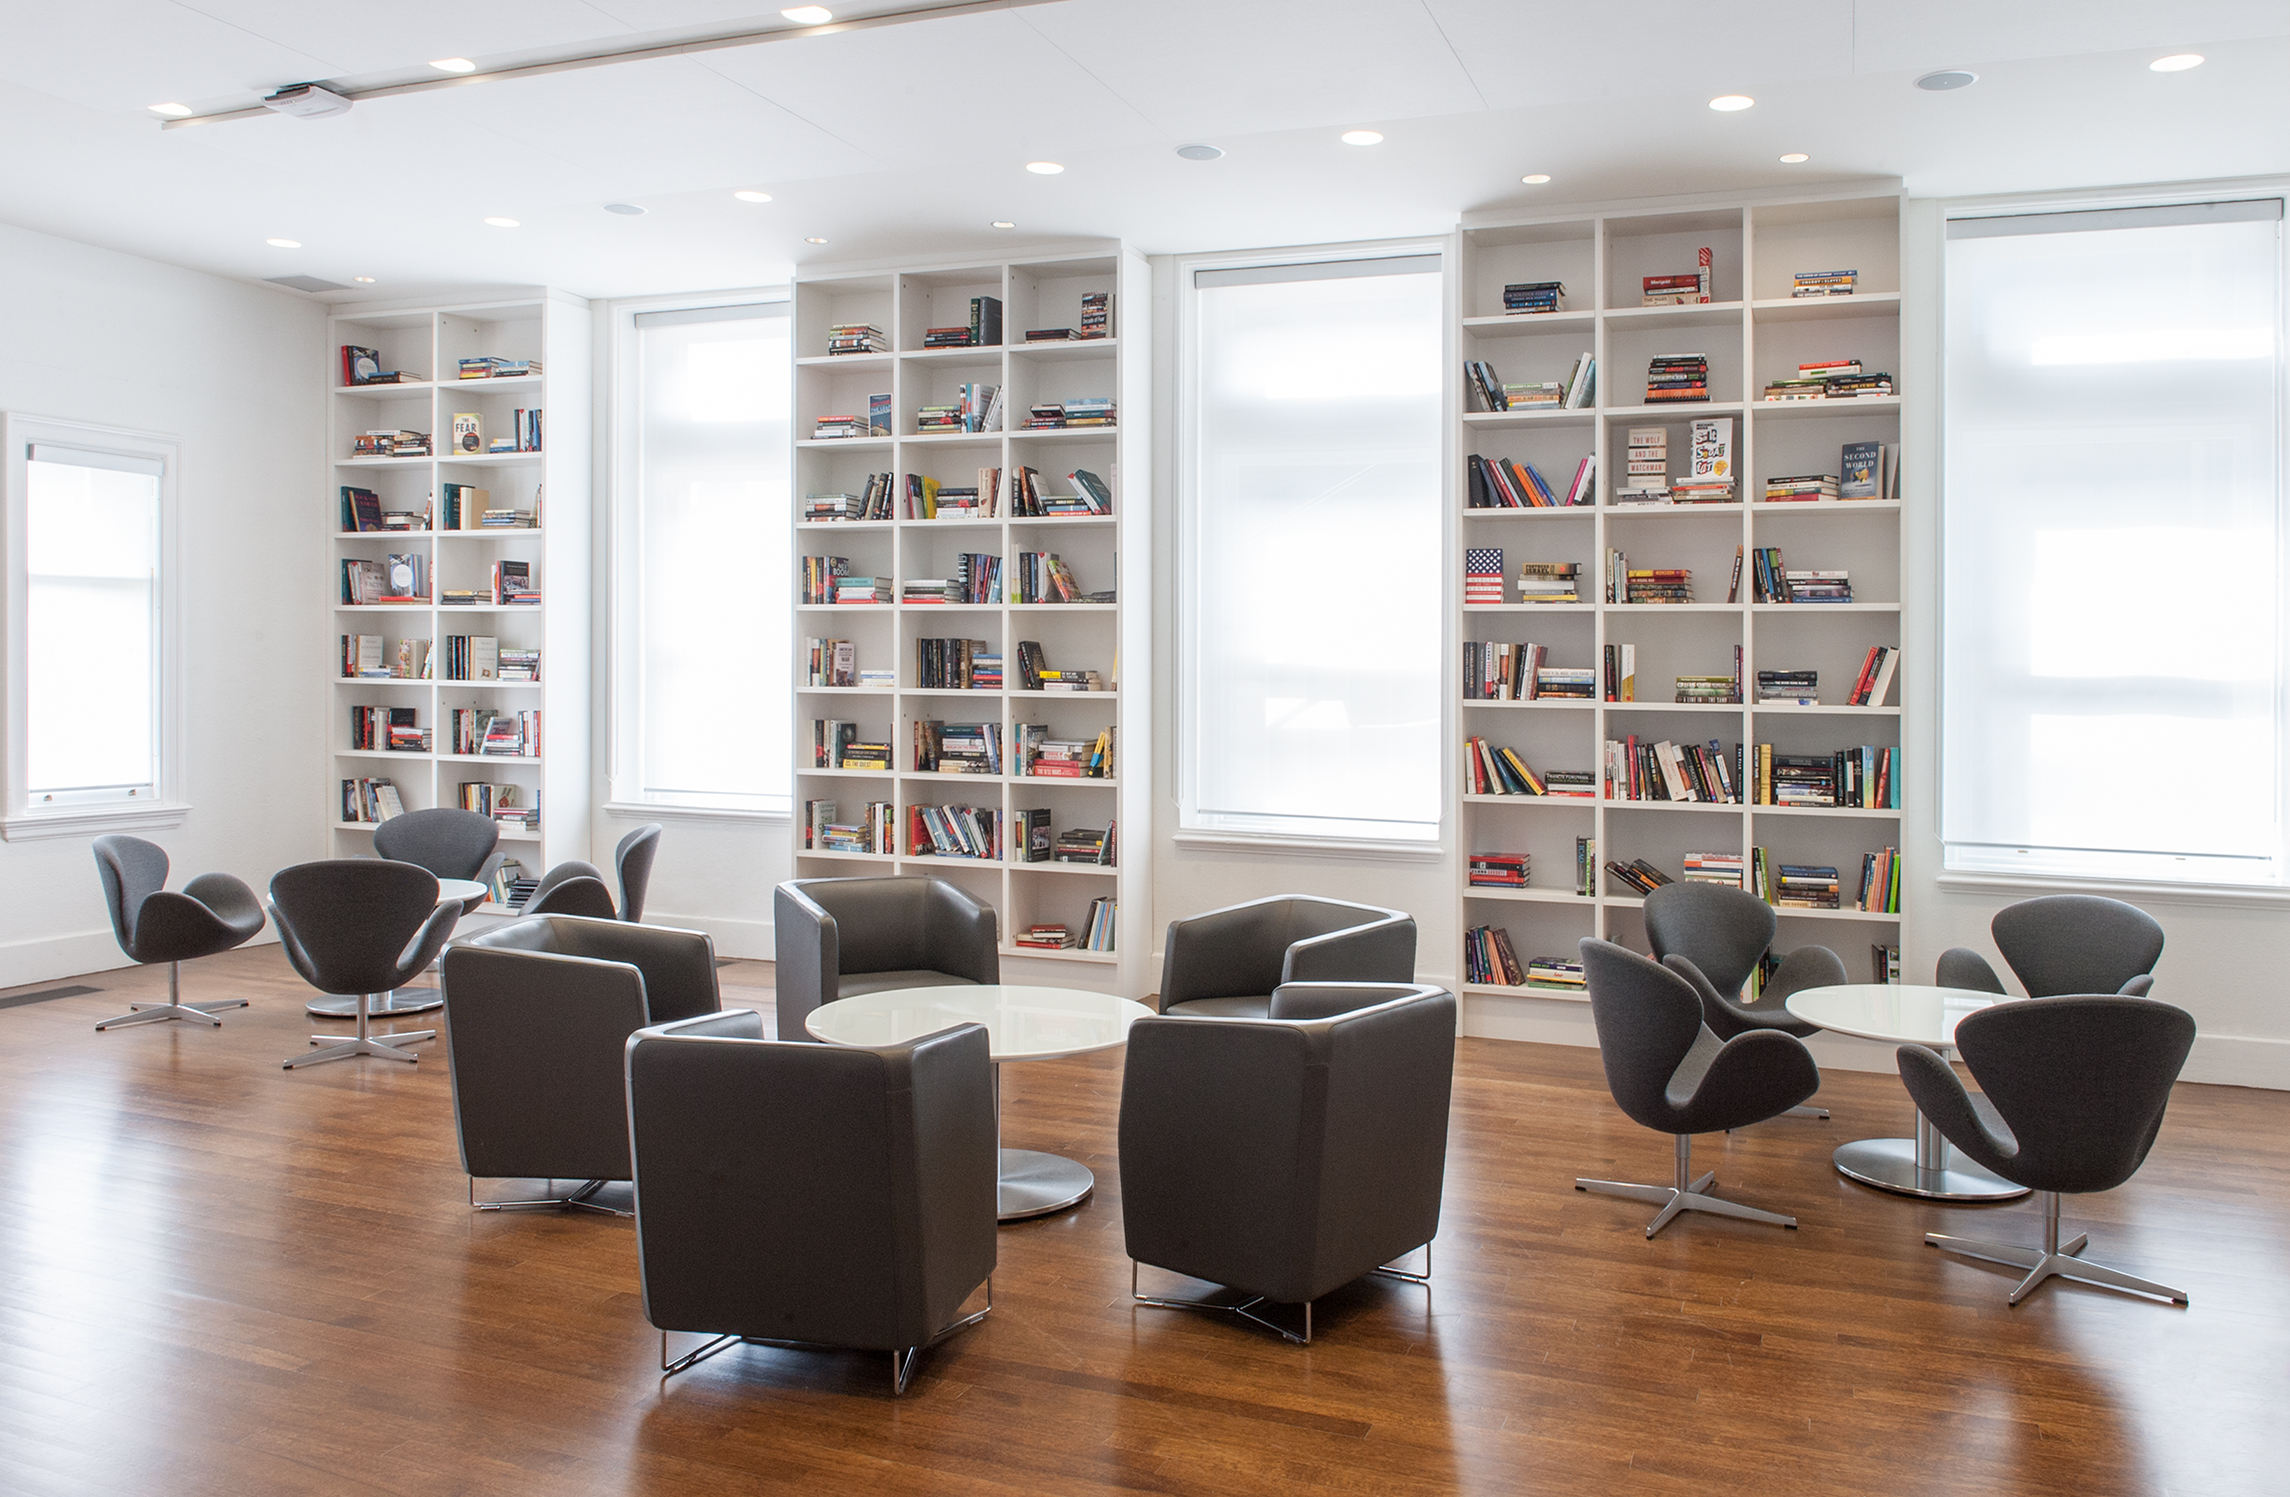 The Library at 315 Bloor Street West is an ideal location for receptions and small gatherings